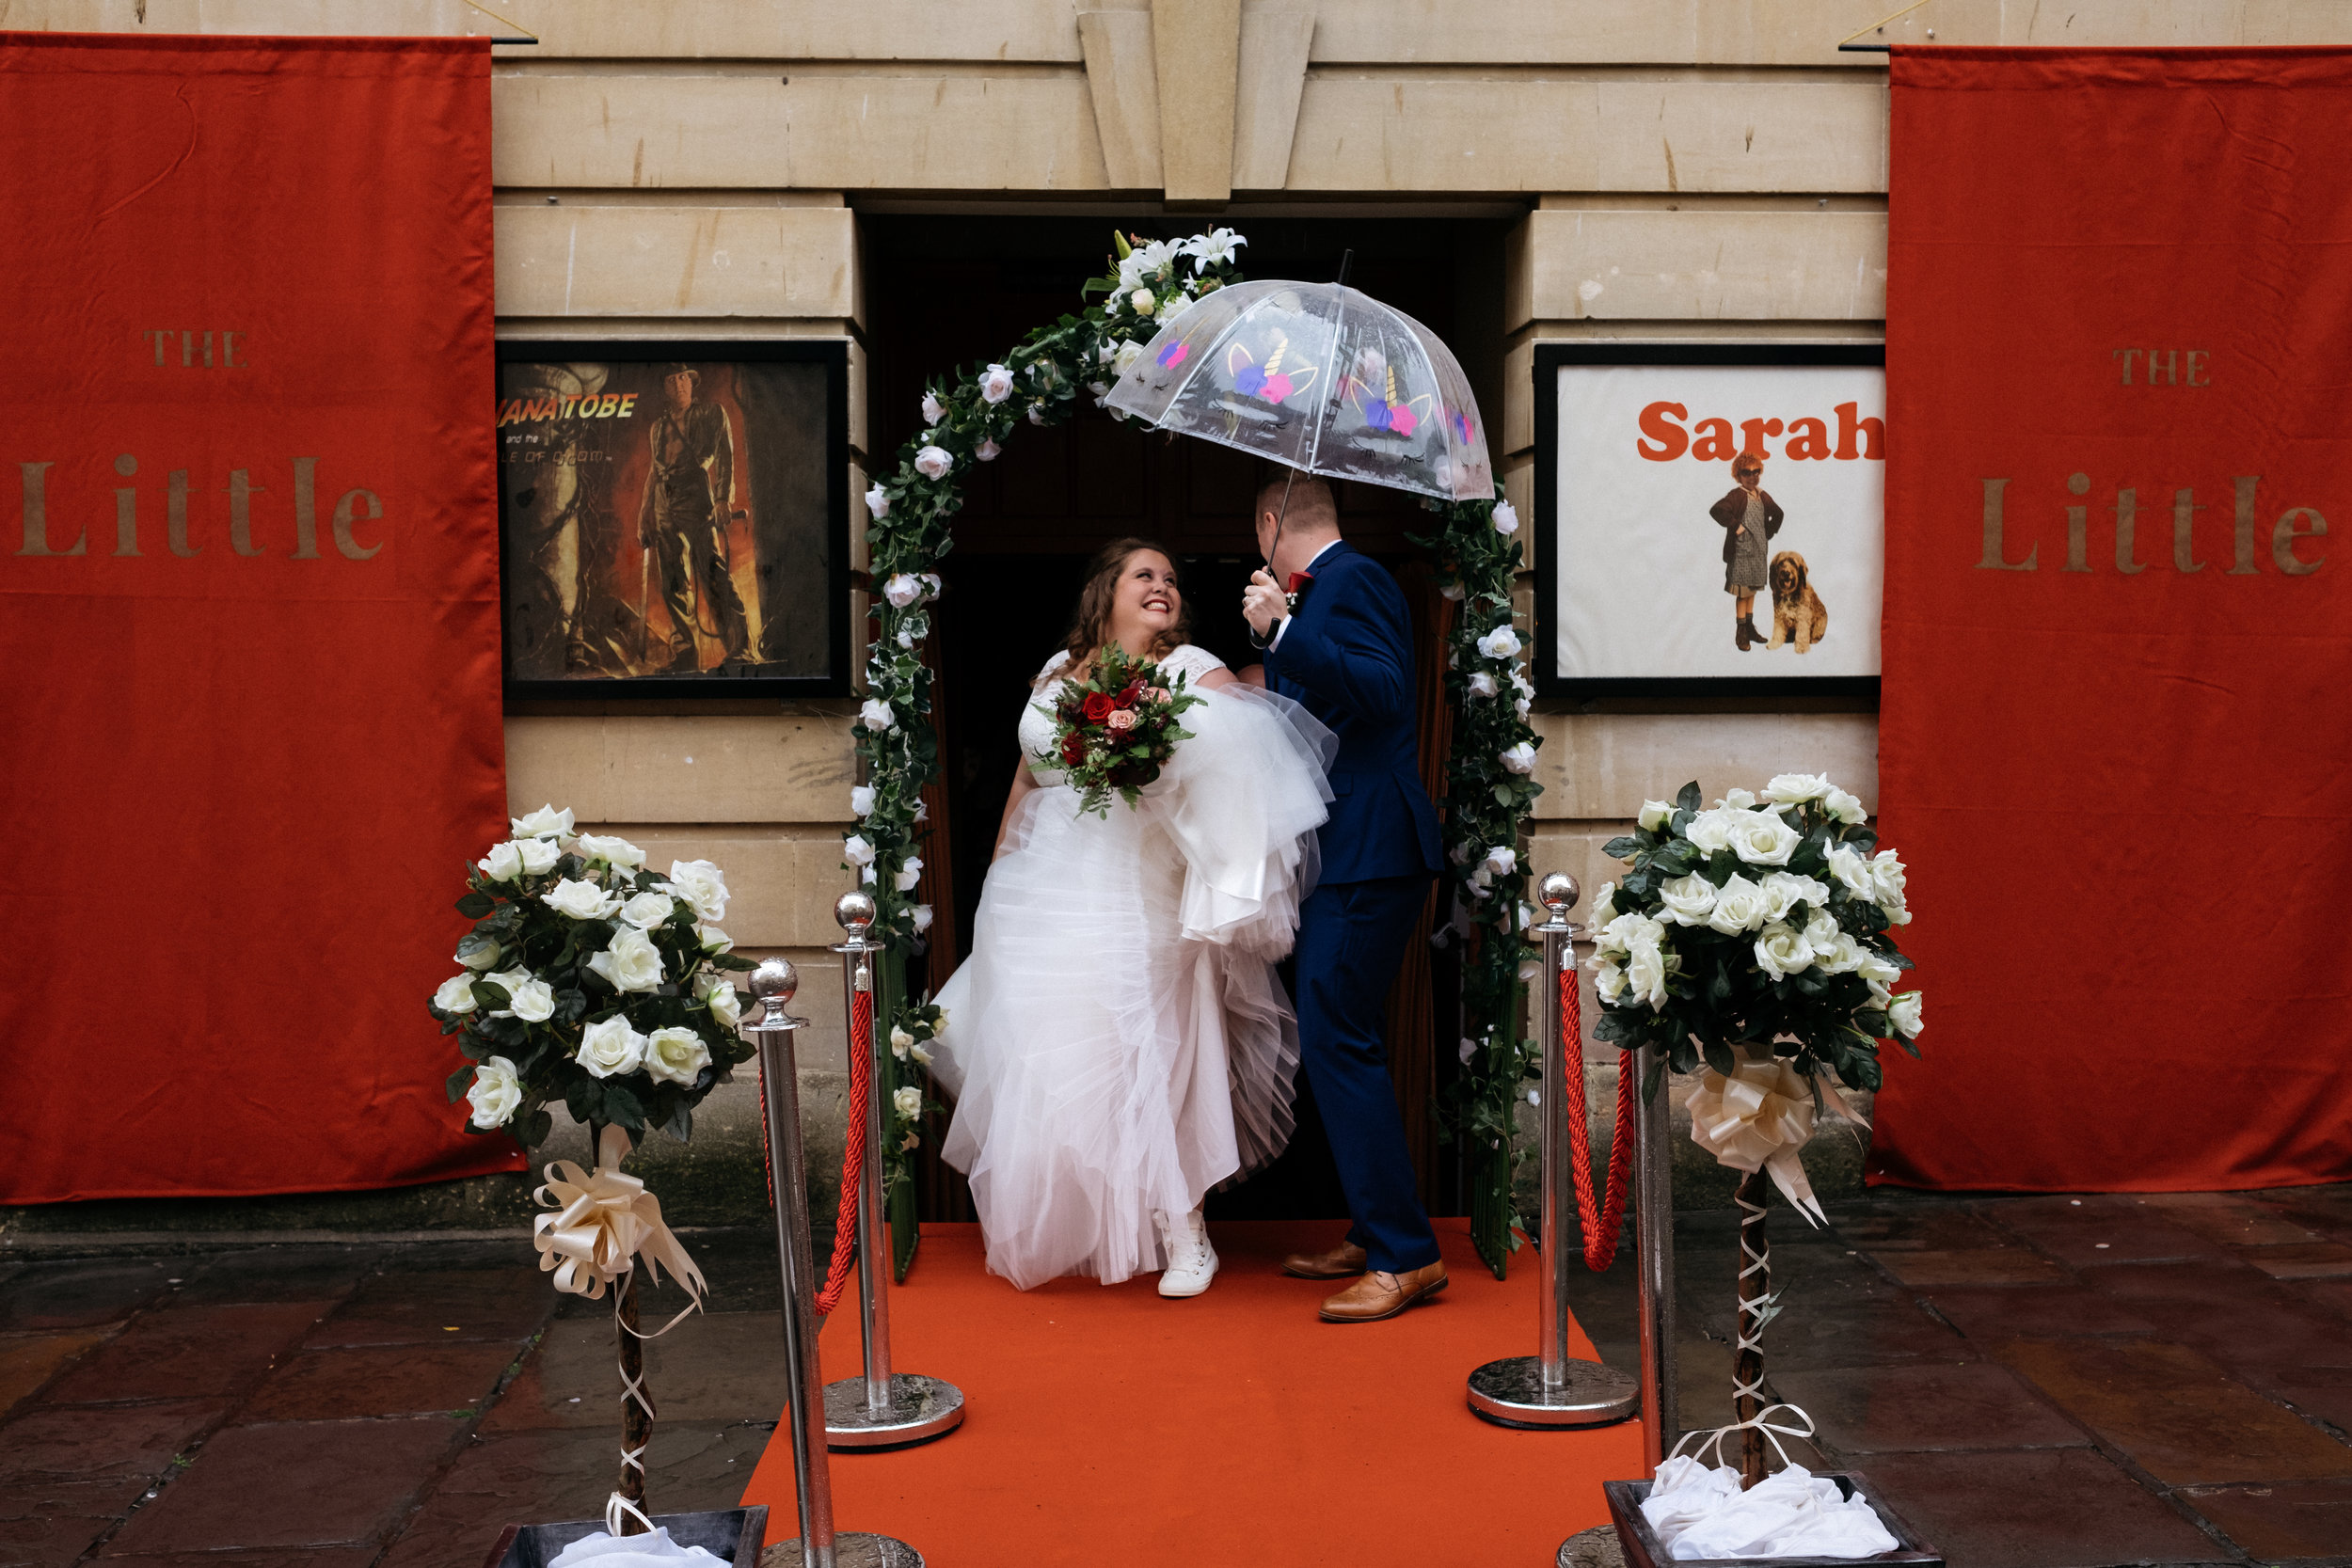 The Little Theatre wedding in Bath